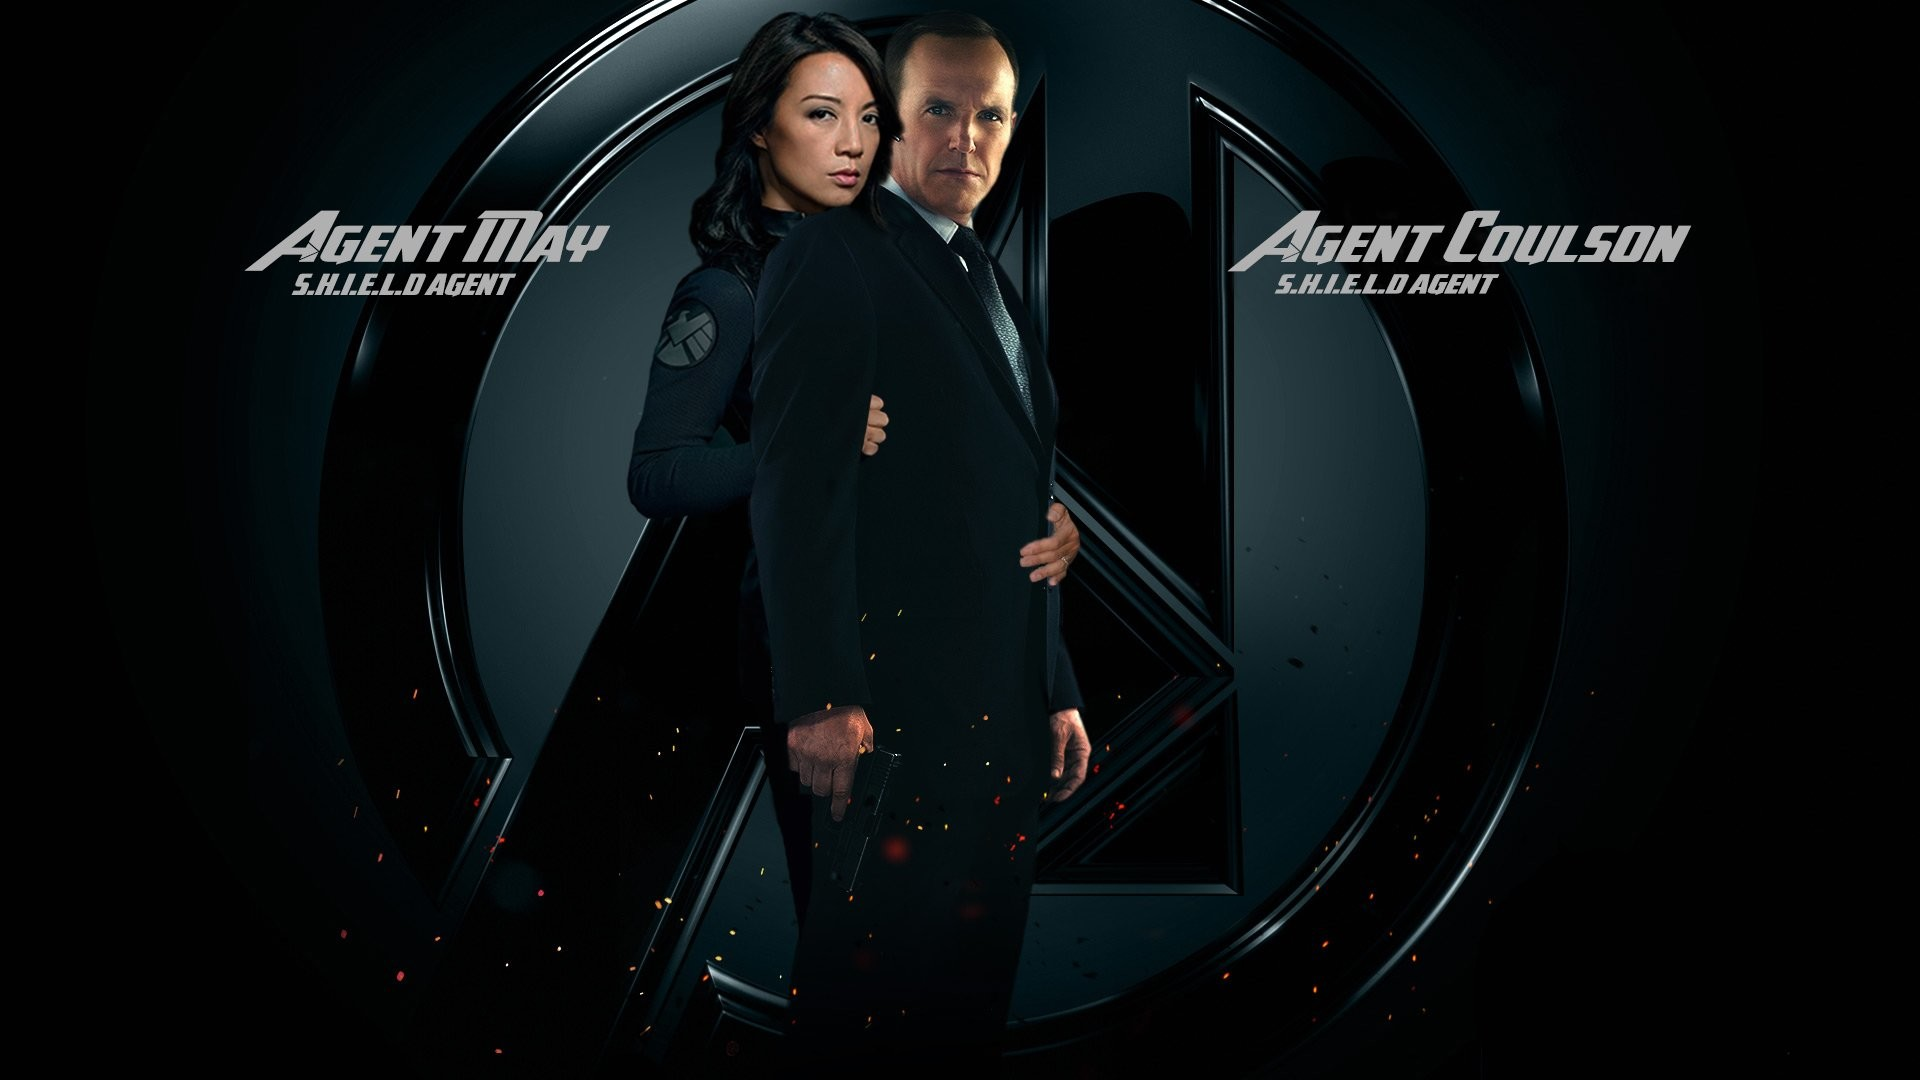 1920x1080 AGENTS OF SHIELD action drama sci fi marvel comic series crime 43